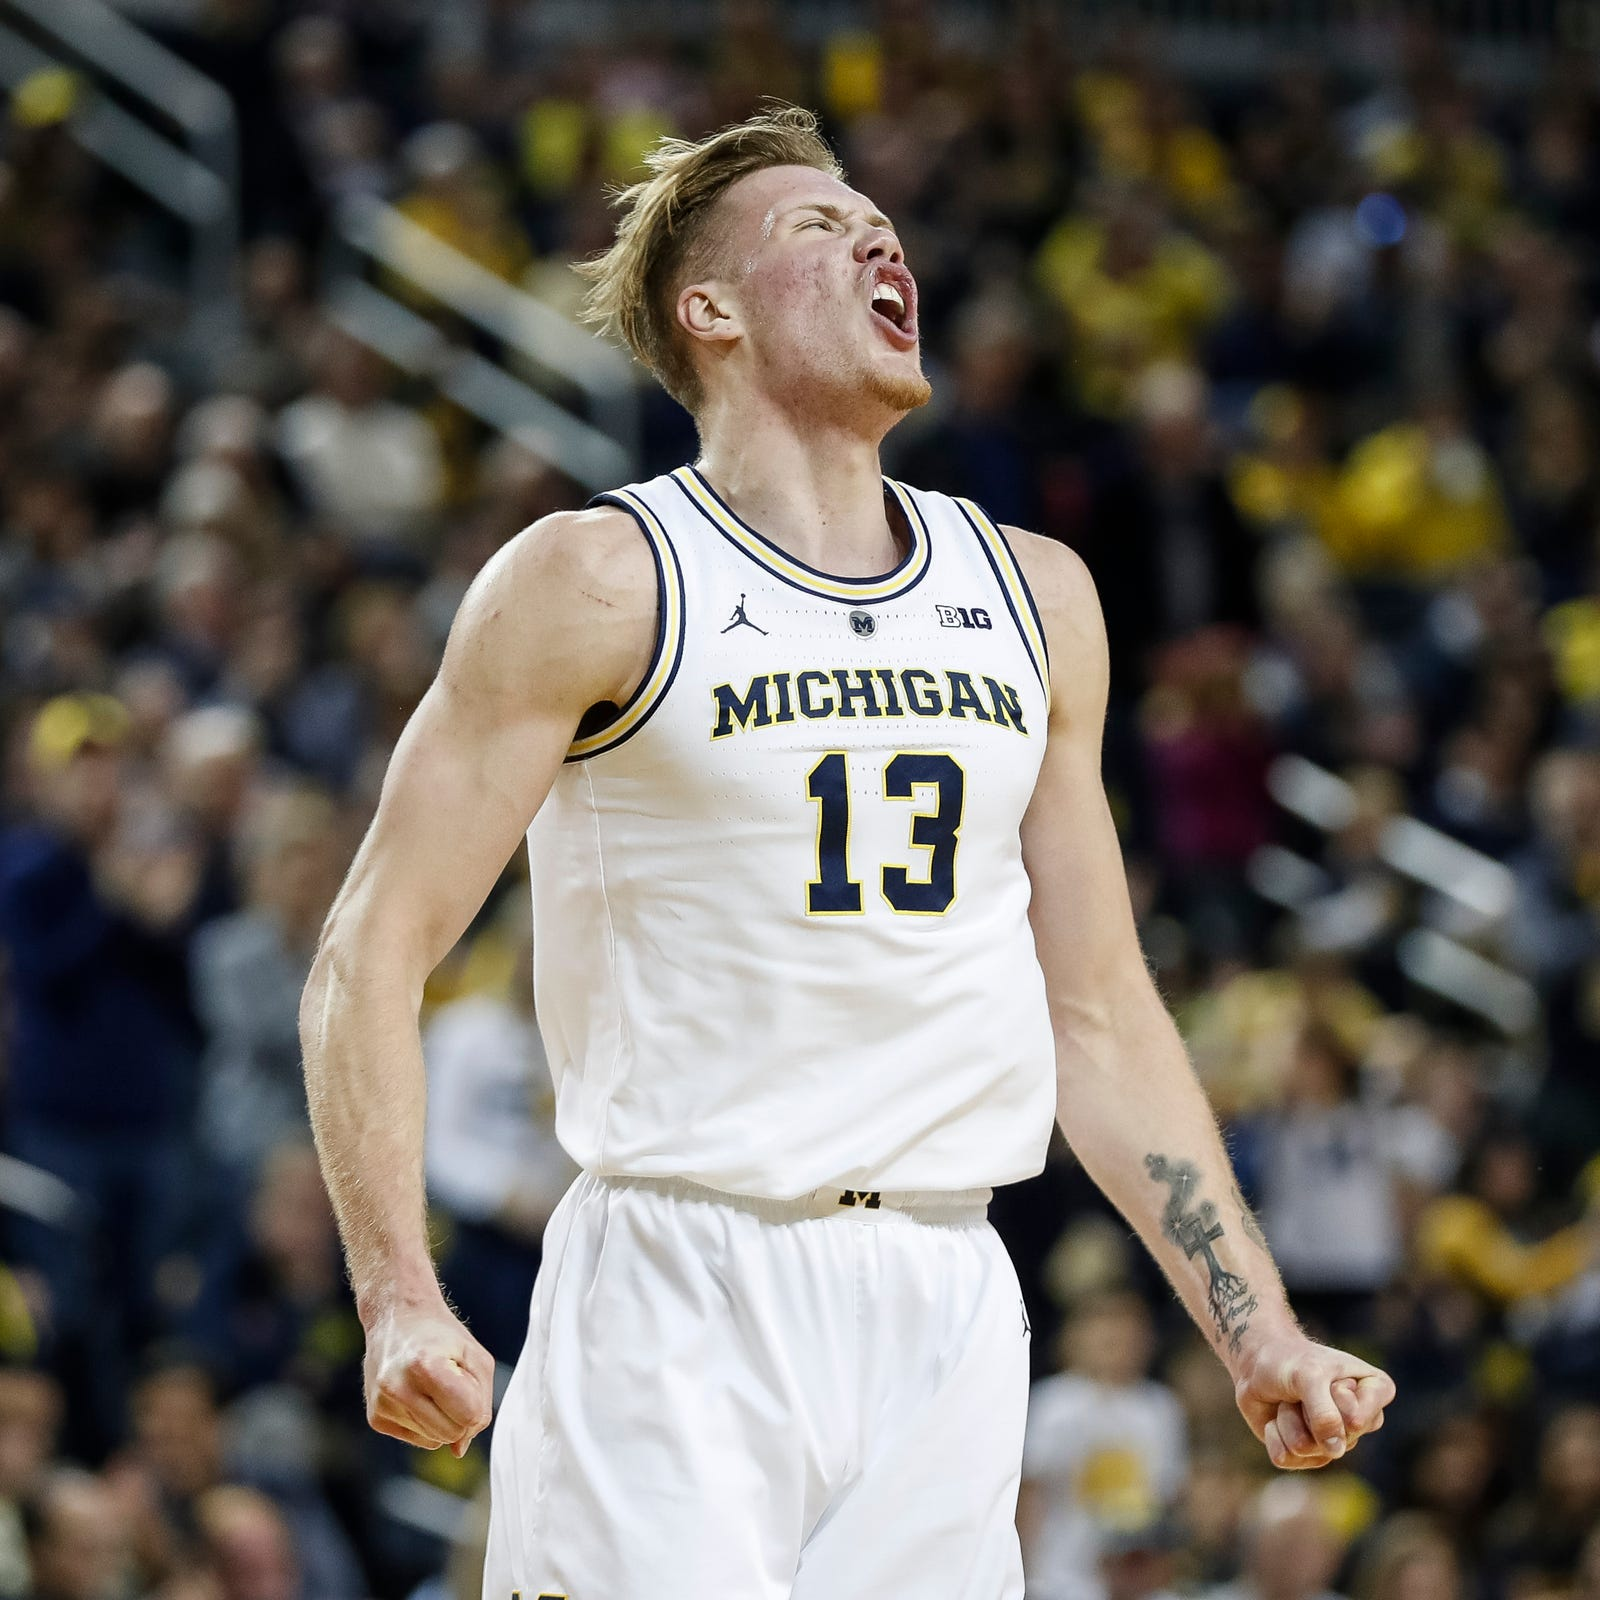 Michigan basketball vs. Western Michigan: How to watch Wolverines